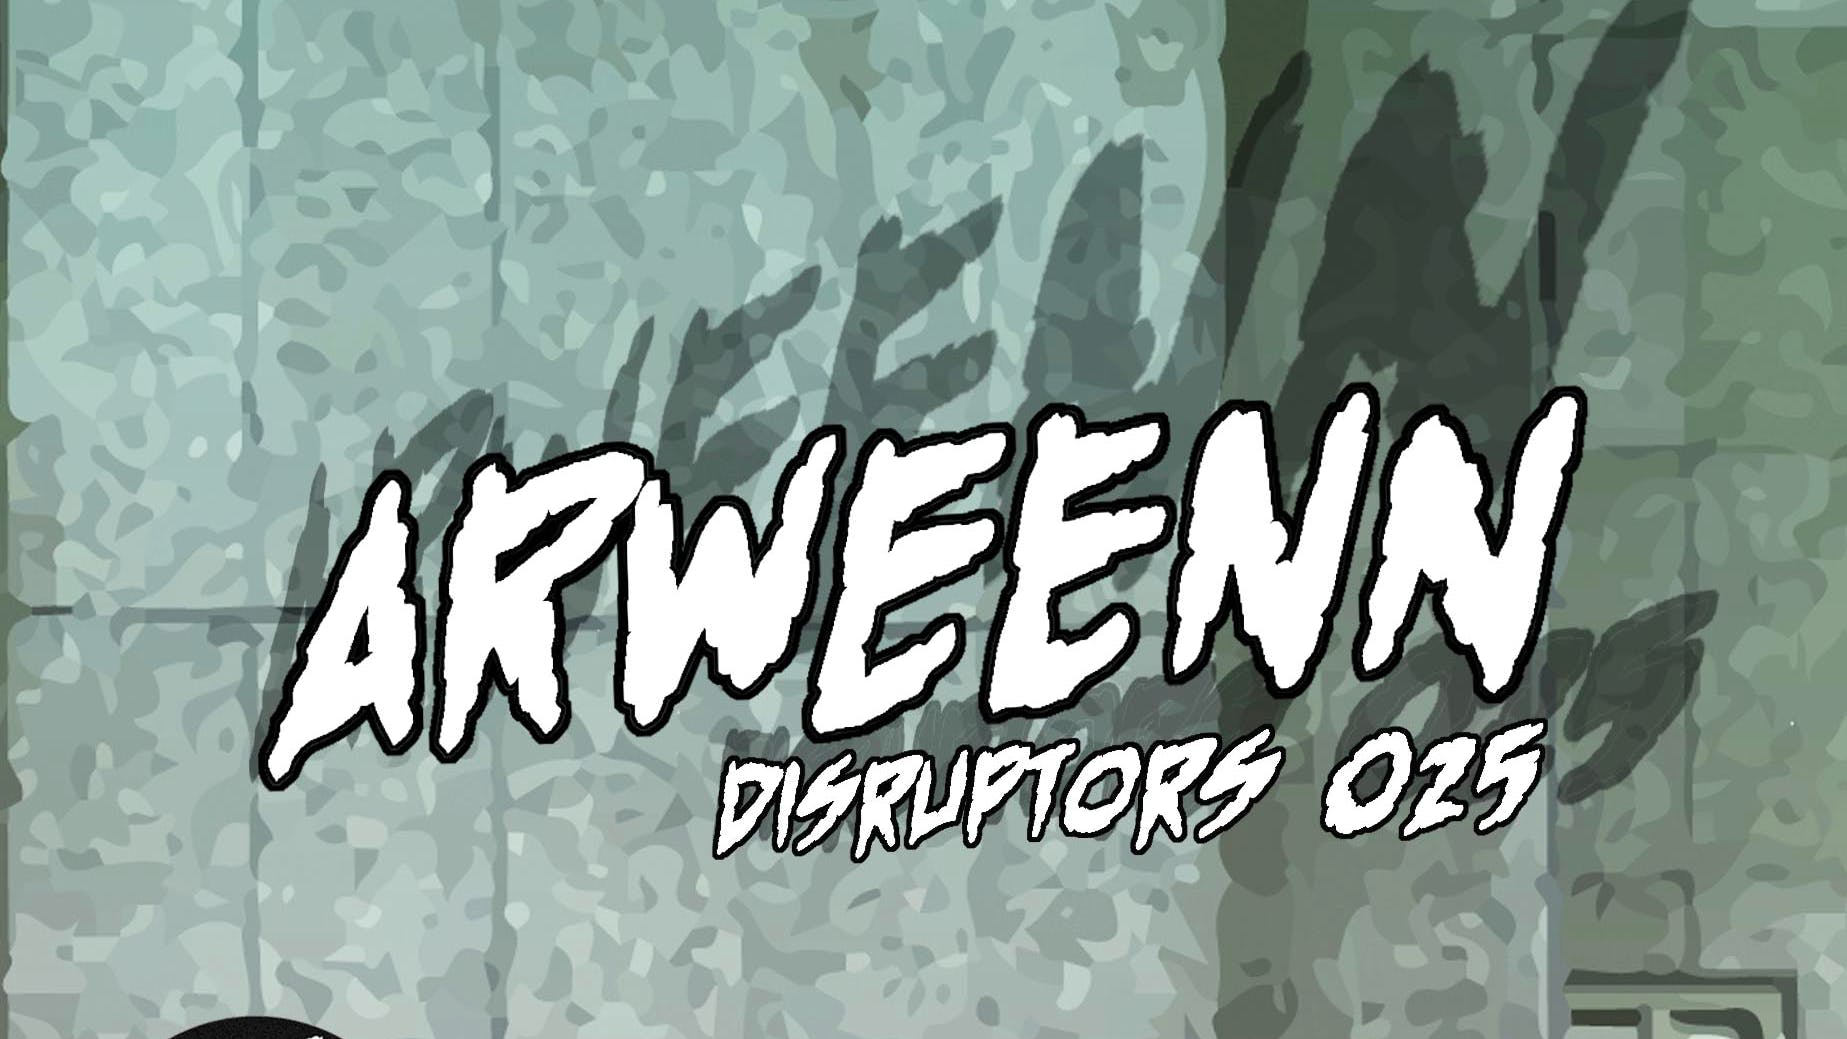 Disruptor 025 – Arweenn Brings Us 2 Hours of Future Rave On His Alderic VA Release Day